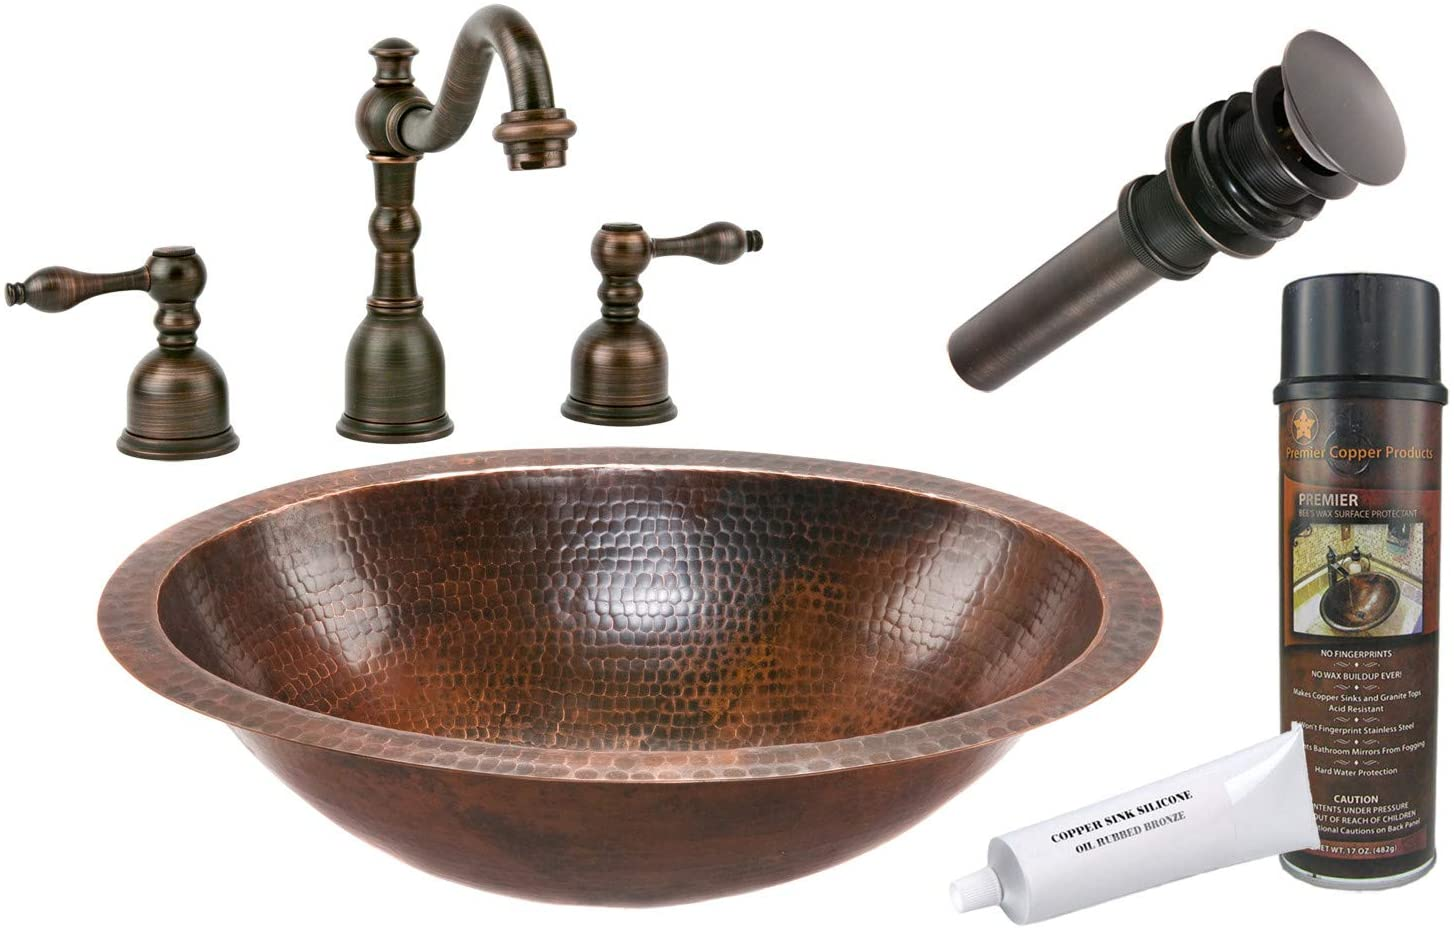 Premier Copper Products BSP2_LO19FDB Oval Under Counter Hammered Copper Sink with Widespread Faucet, Oil Rubbed Bronze